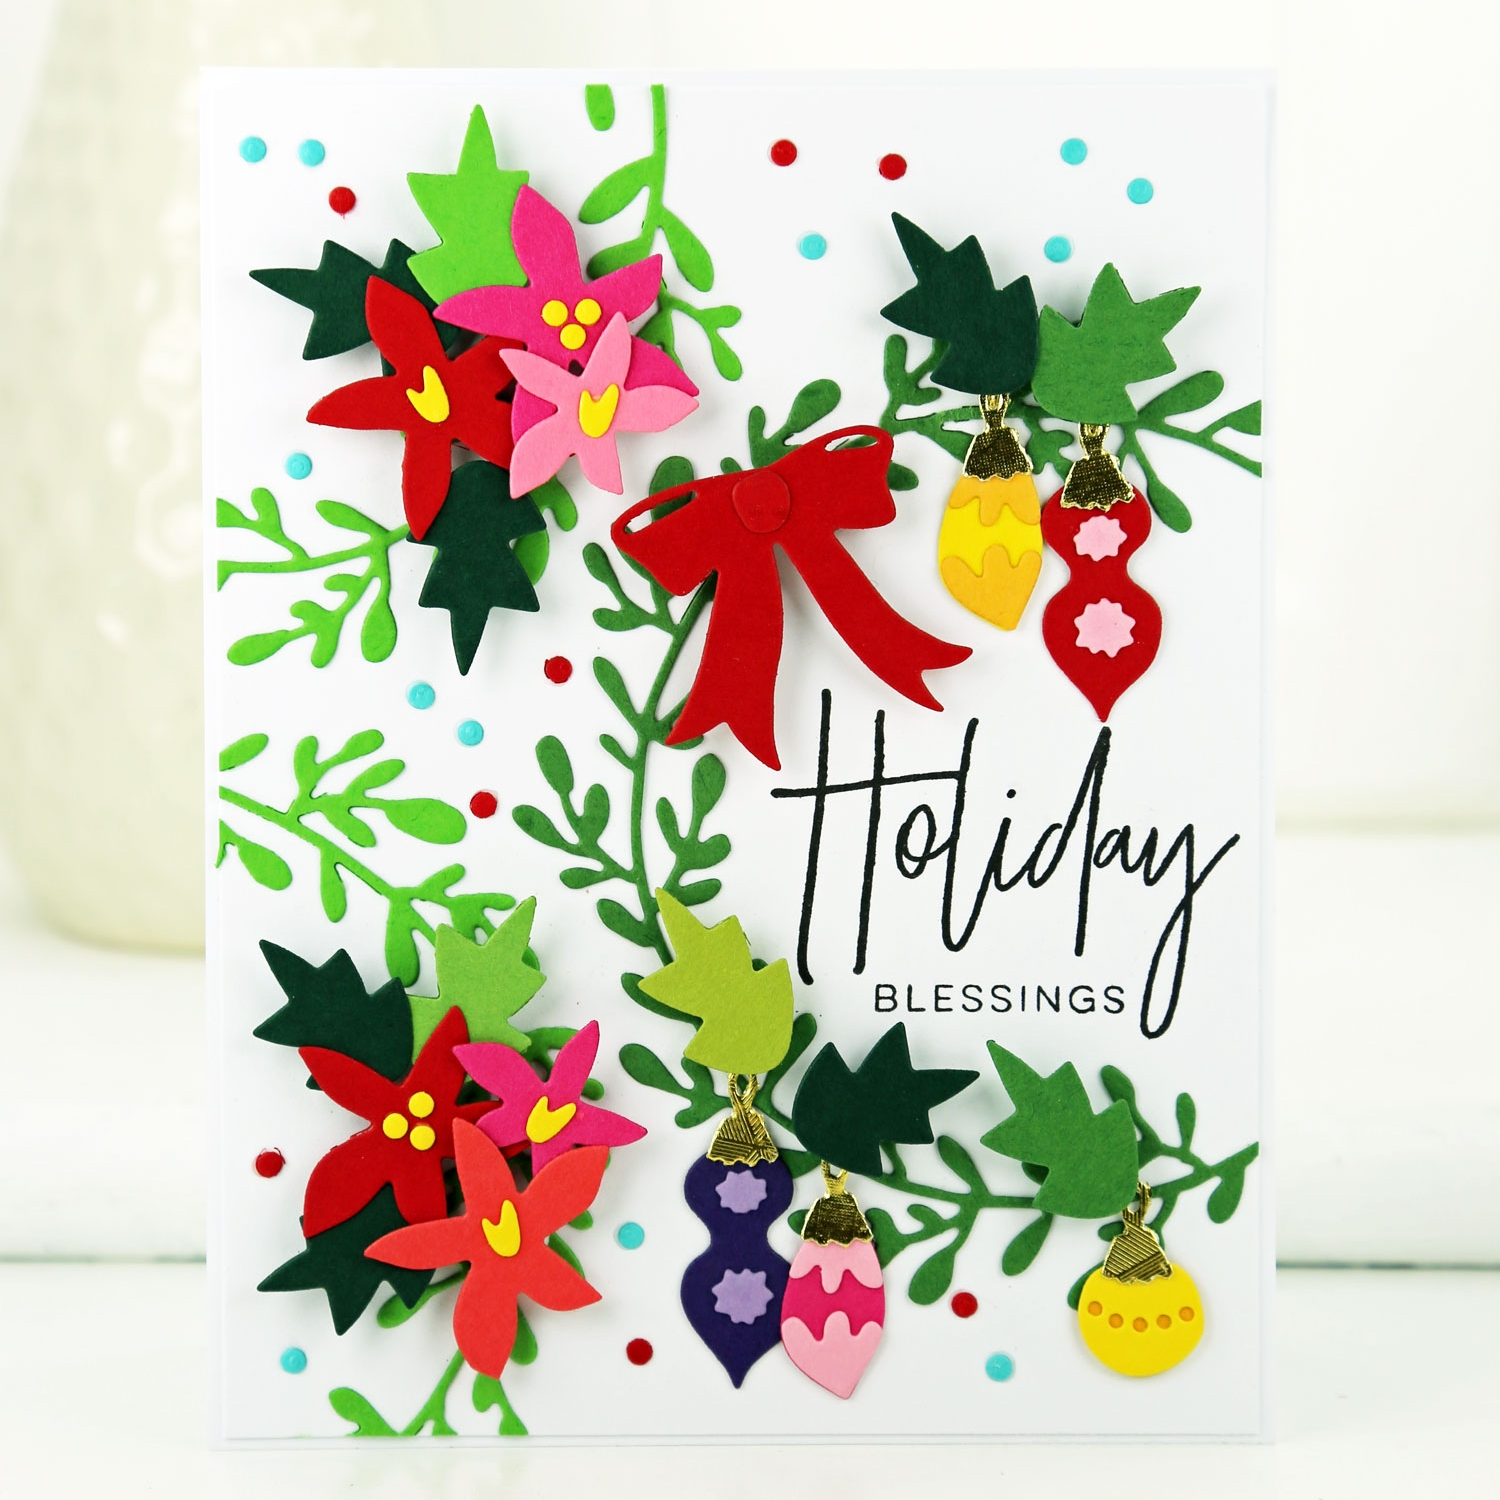 Holiday+Blessings+Decorated+Seasonal+Wreath+Card+by+Jeanne+J.+--+rightathomeshop.com-blog.jpeg